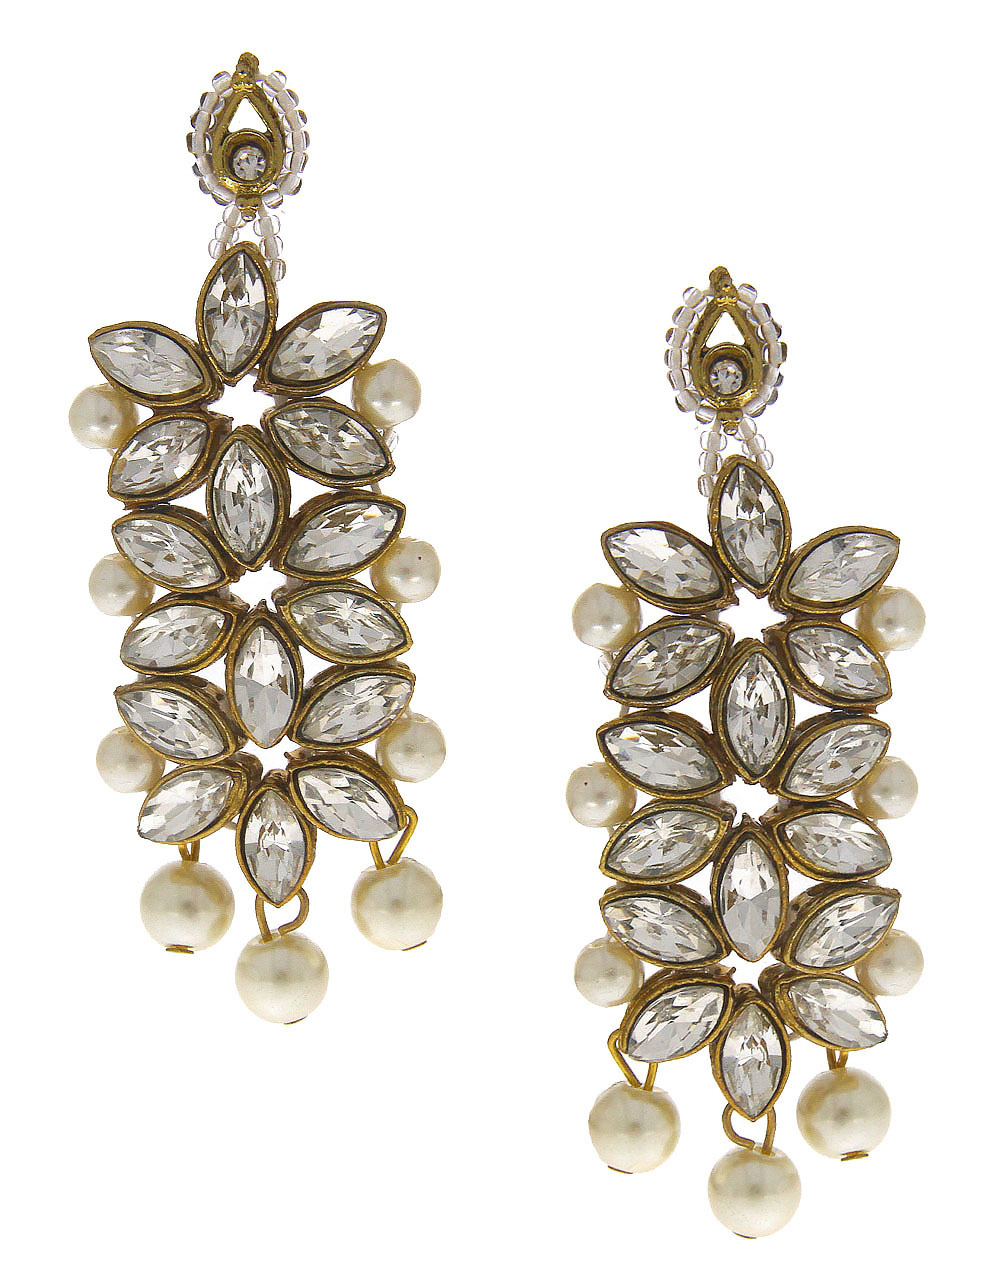 Antique Gold Finish Fashionable Earrings Styled With Pearls Earrings